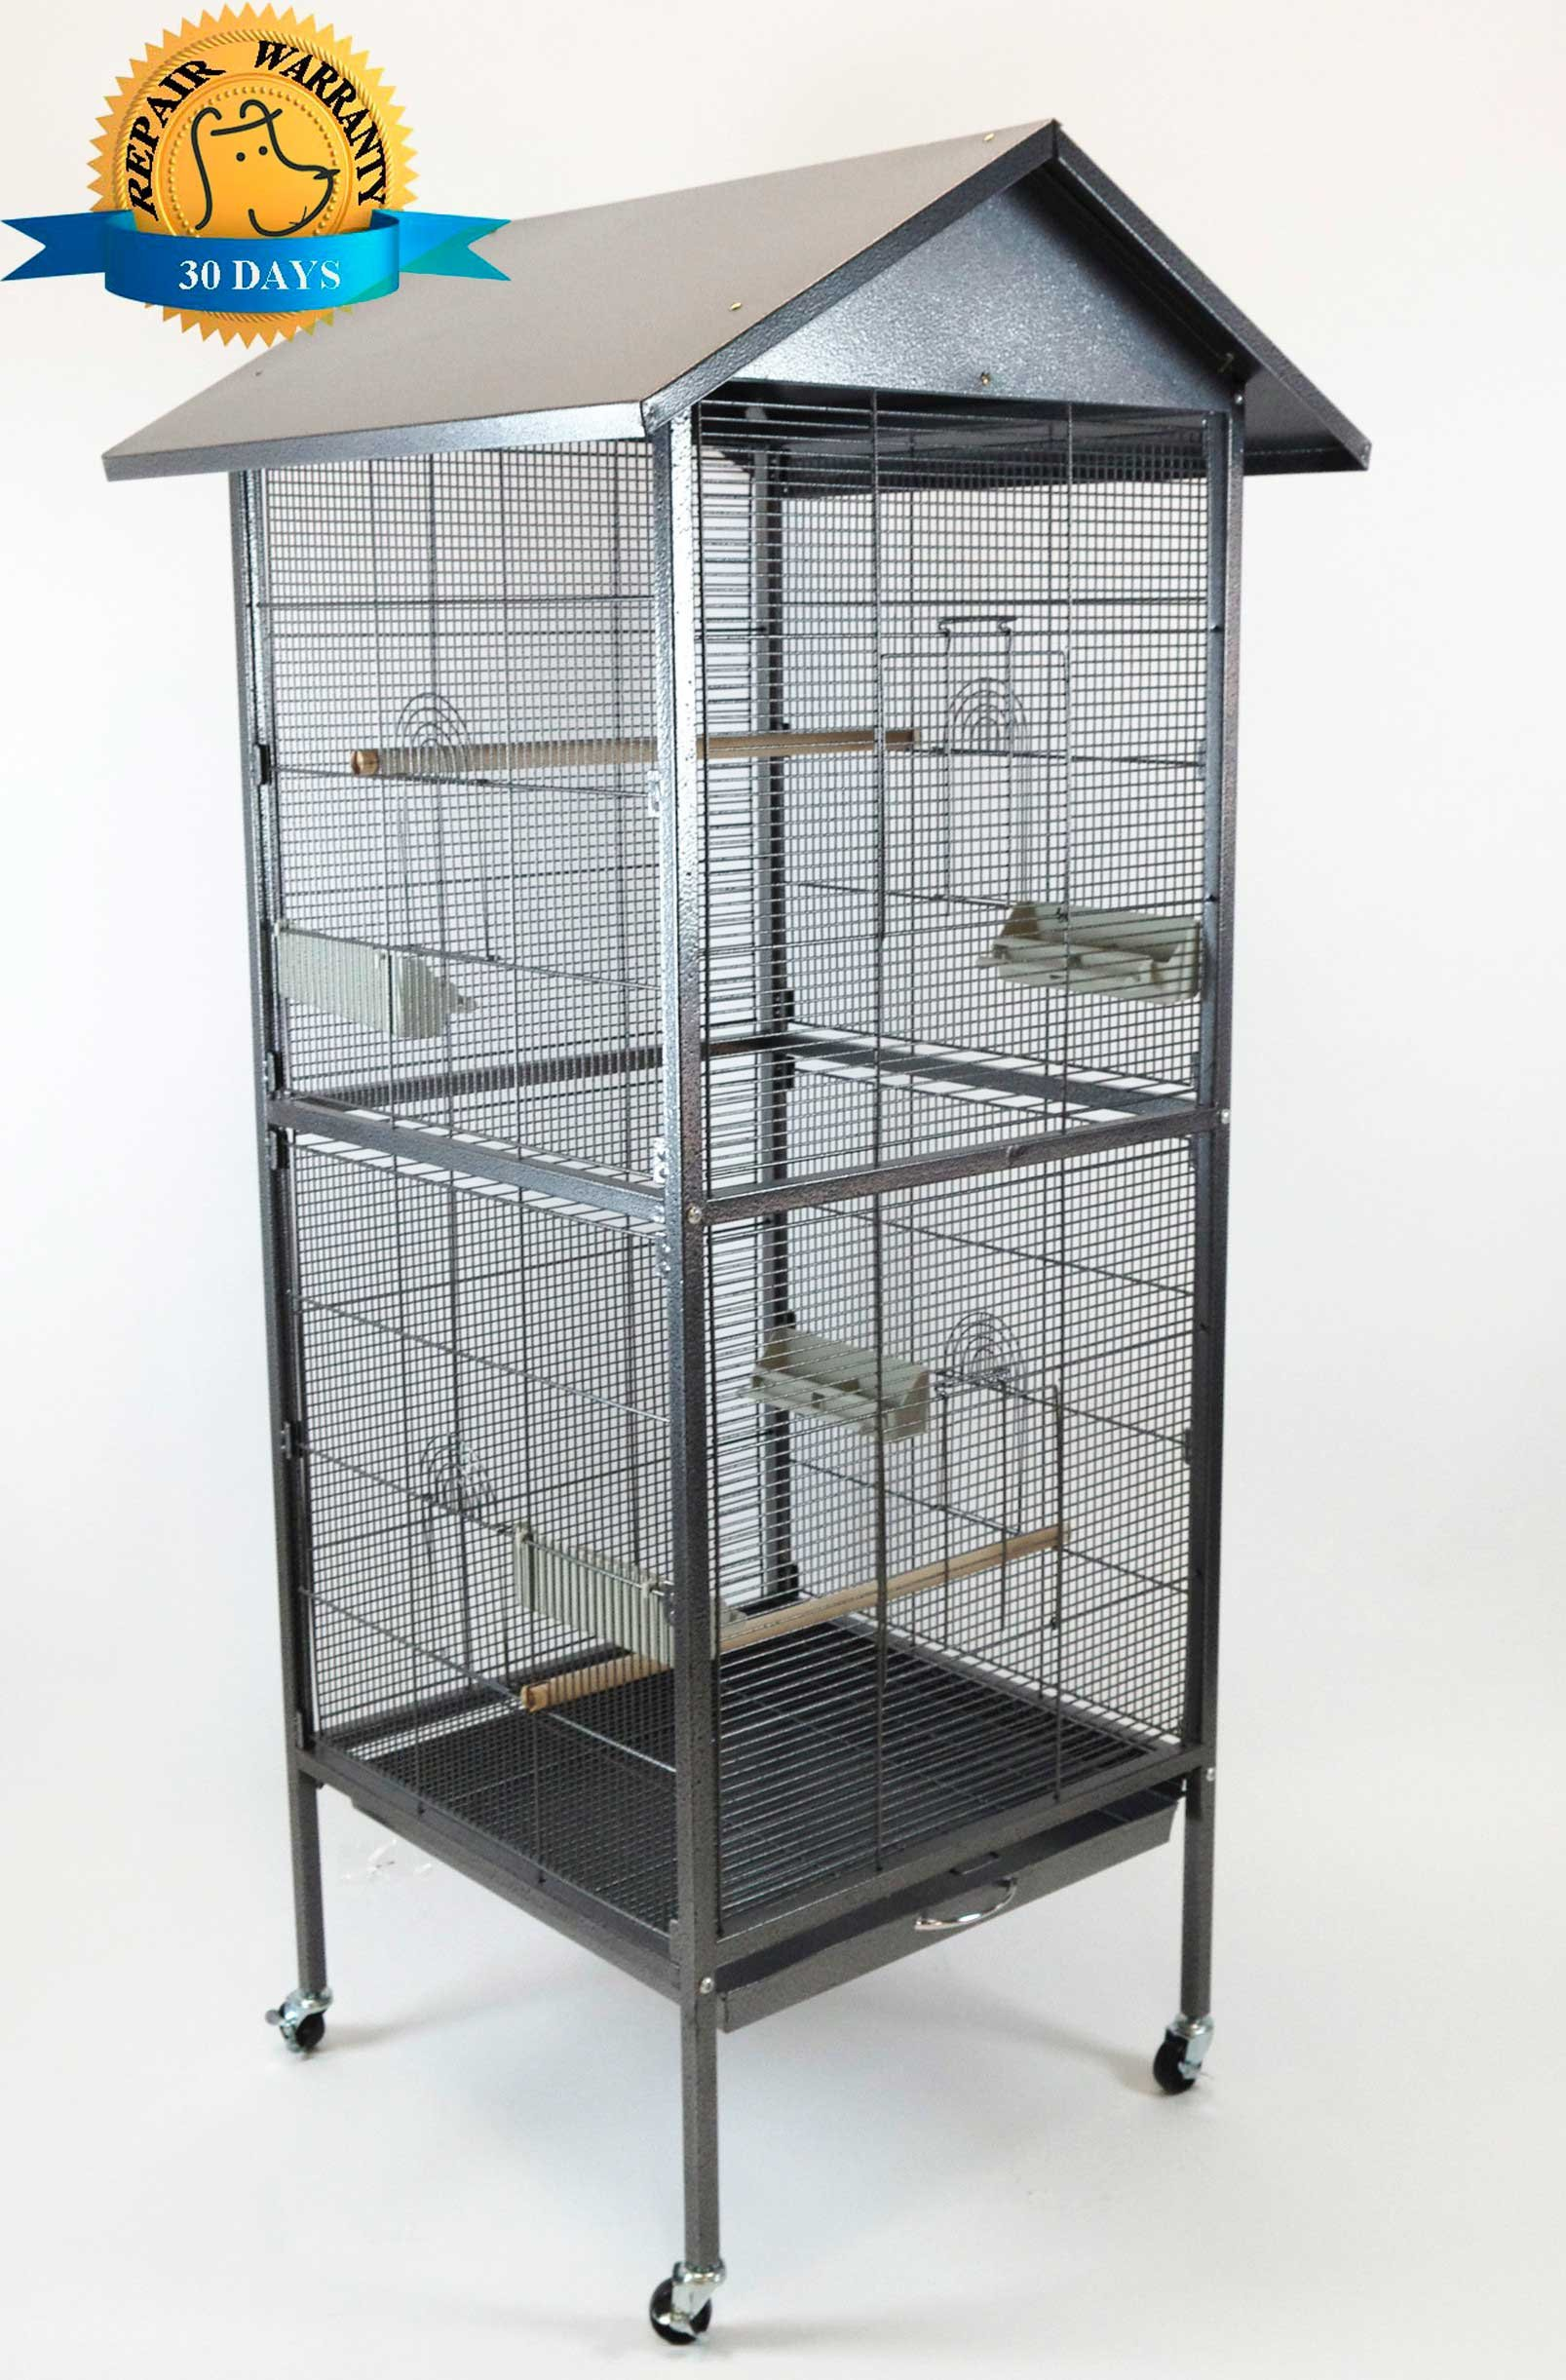 Homey Pet - 65'' House Shape Bird Cockatoo Macaw Cage with Roof Casters, Feed Door, Perch, Metal Tray. Size: 23 ½'' (W) x 23 ½'' (L) x 54 ¼' (H). Item ID:PR-1610-BSV